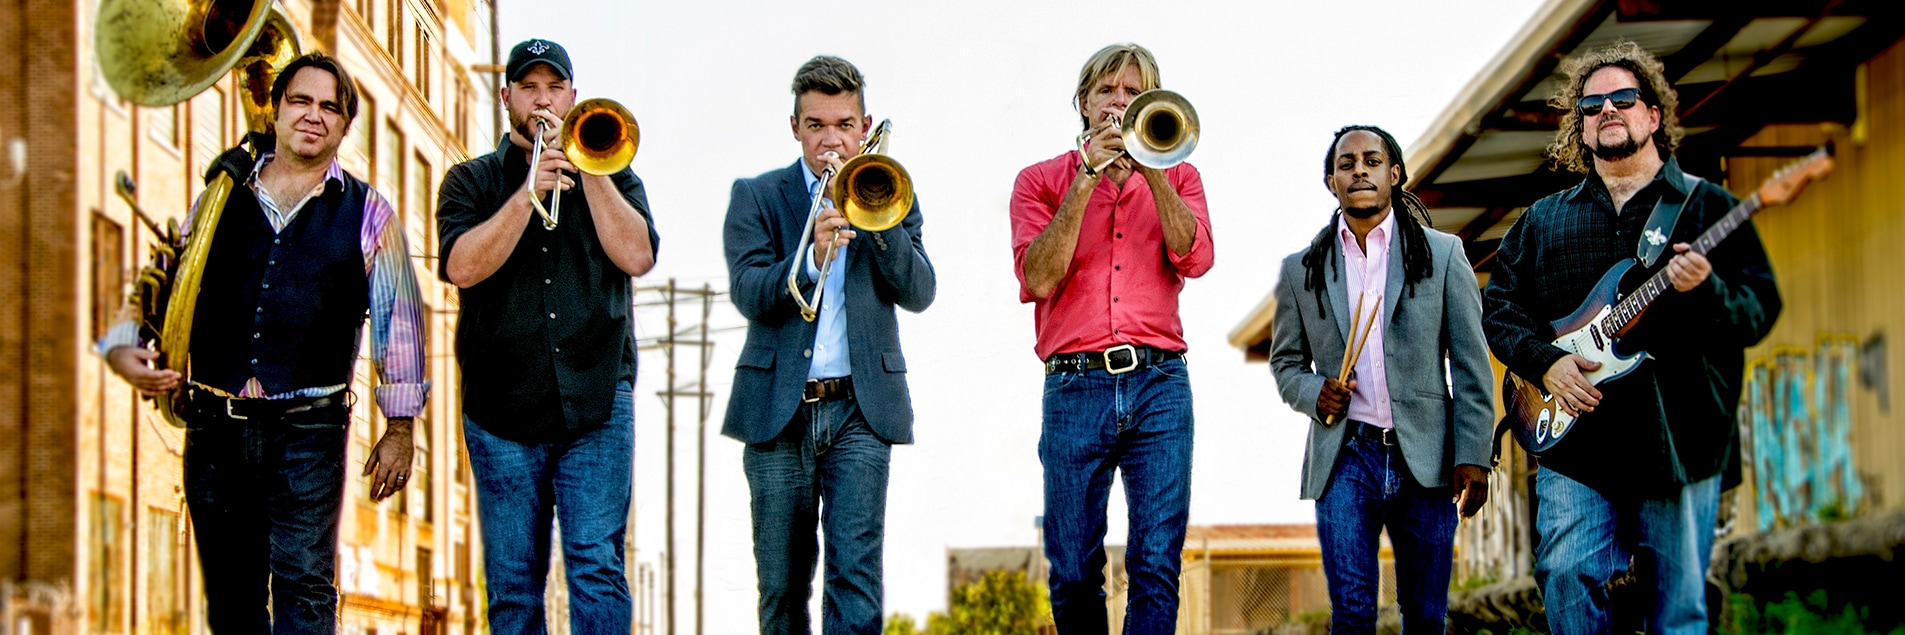 Artist Extras: Sounds of New Orleans with Bonerama